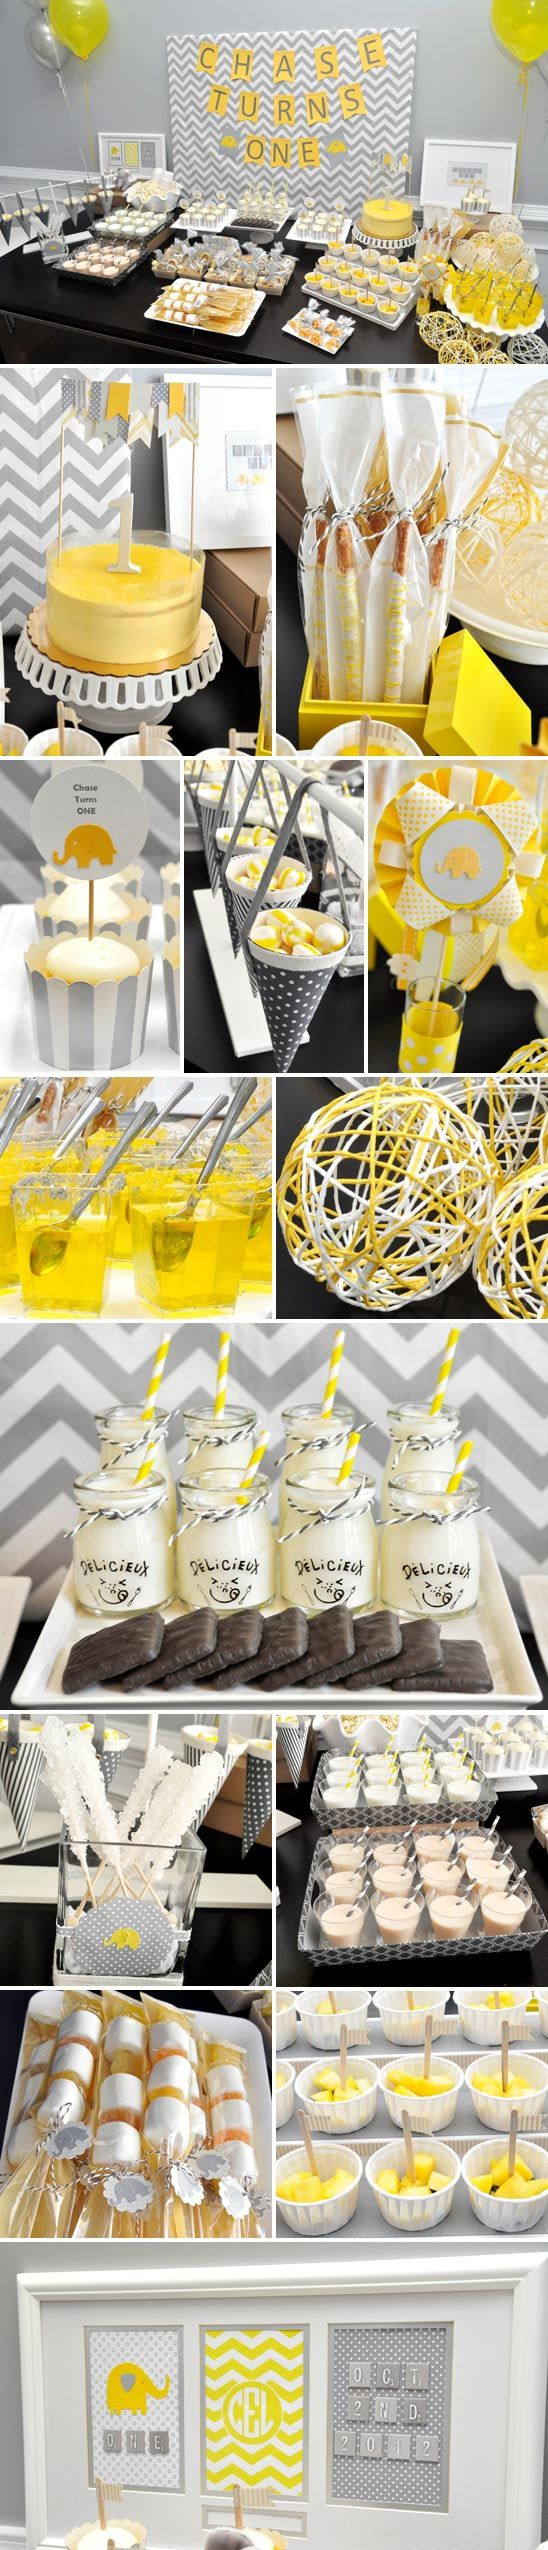 OMG! Yellow & Gray Elephant Themed Dessert Bar for Baby Shower! Love it!